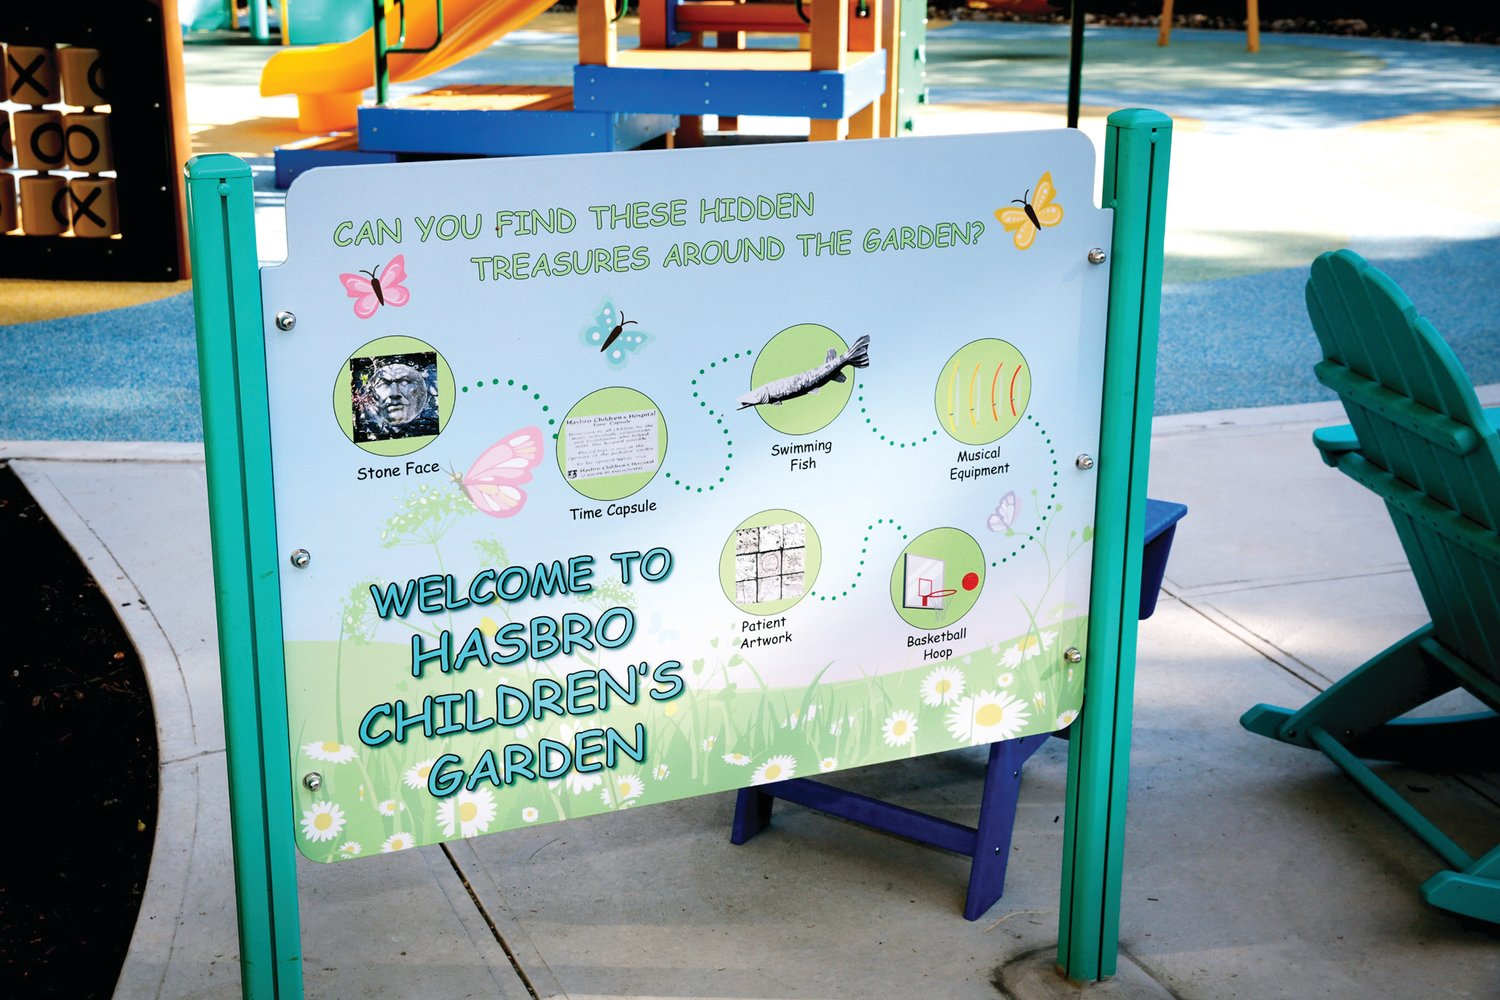 FOR FAMILIES: The new Balise Healing Garden at Hasbro Children's features a fun scavenger hunt for patients and families to enjoy when spending time outdoors during their hospital stay.